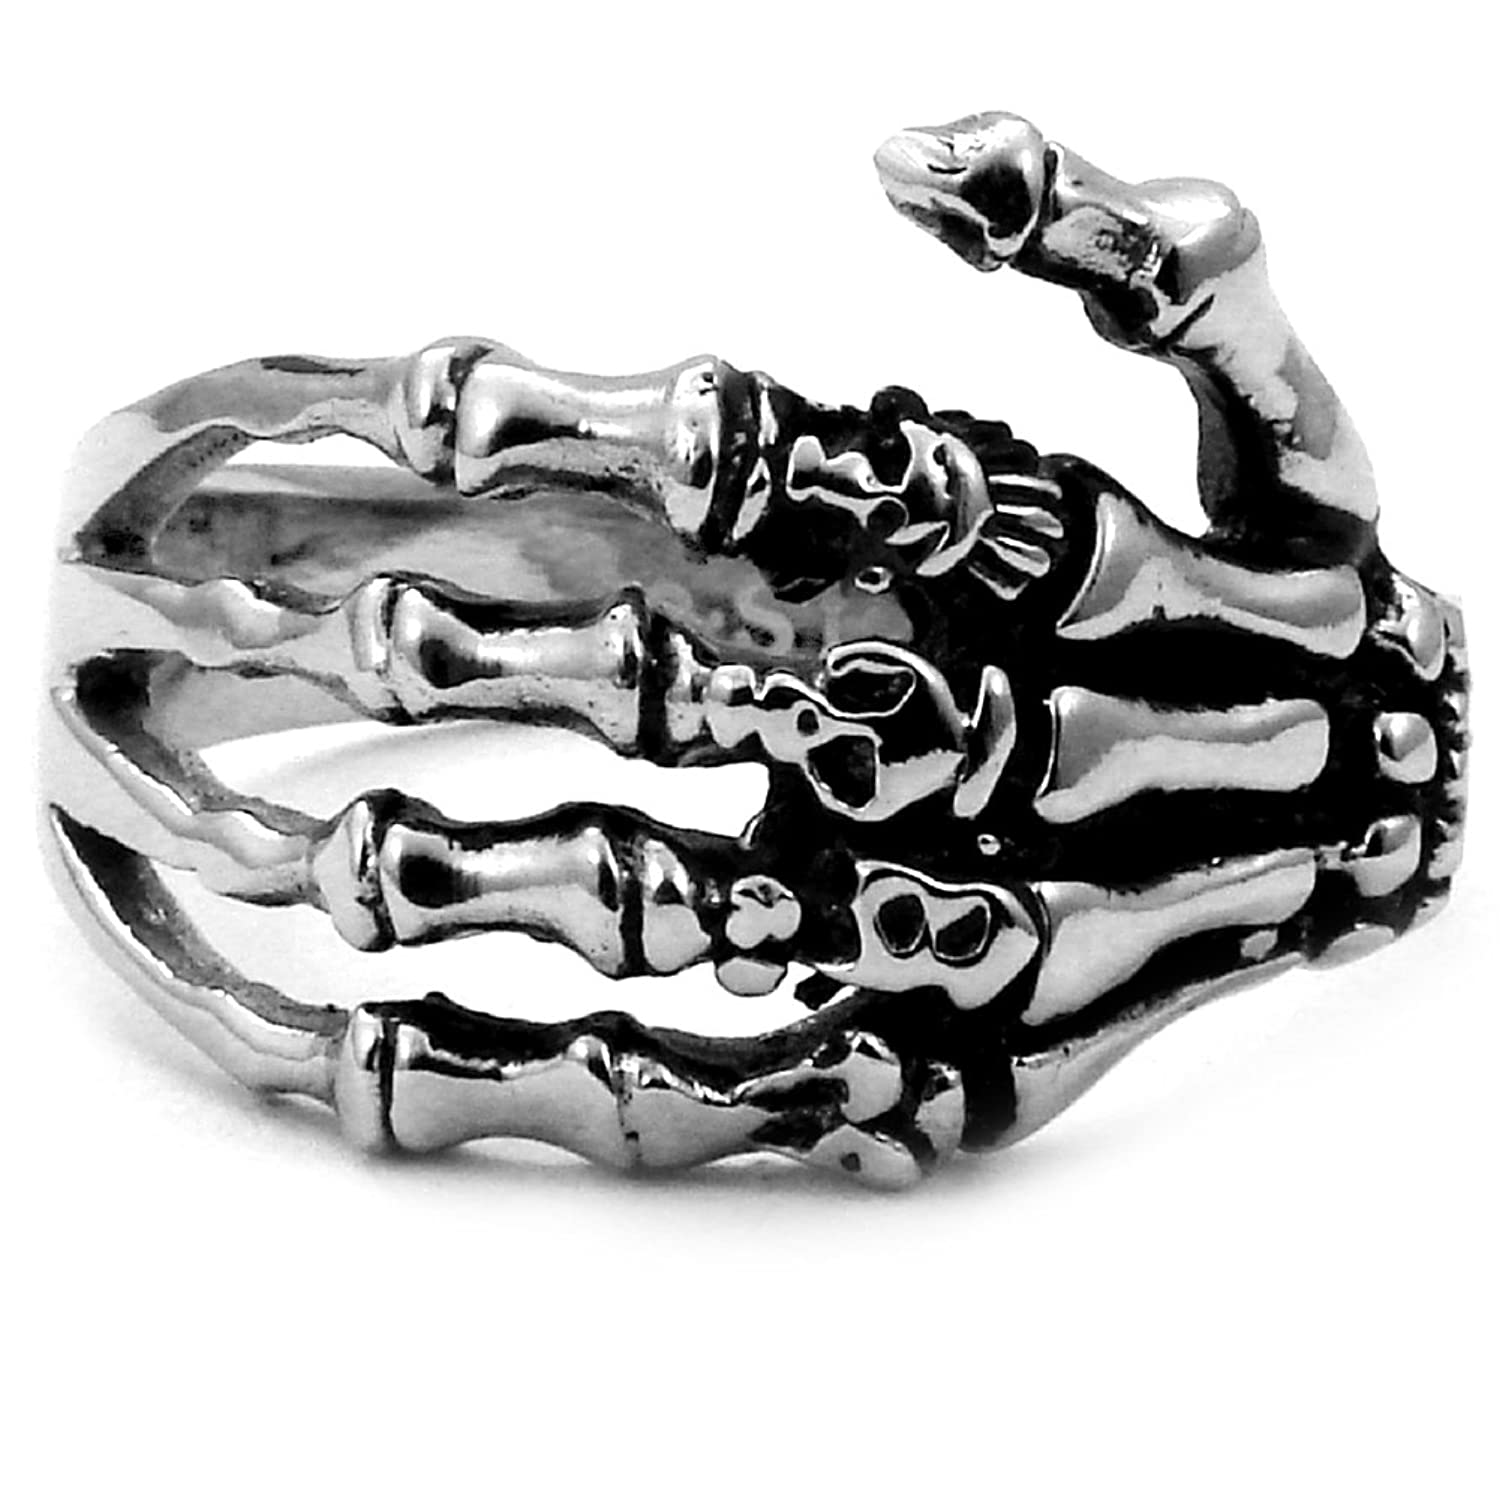 amazoncom stainless steel biker ring with gothic skeleton hand crazy2shop jewelry - Biker Wedding Rings